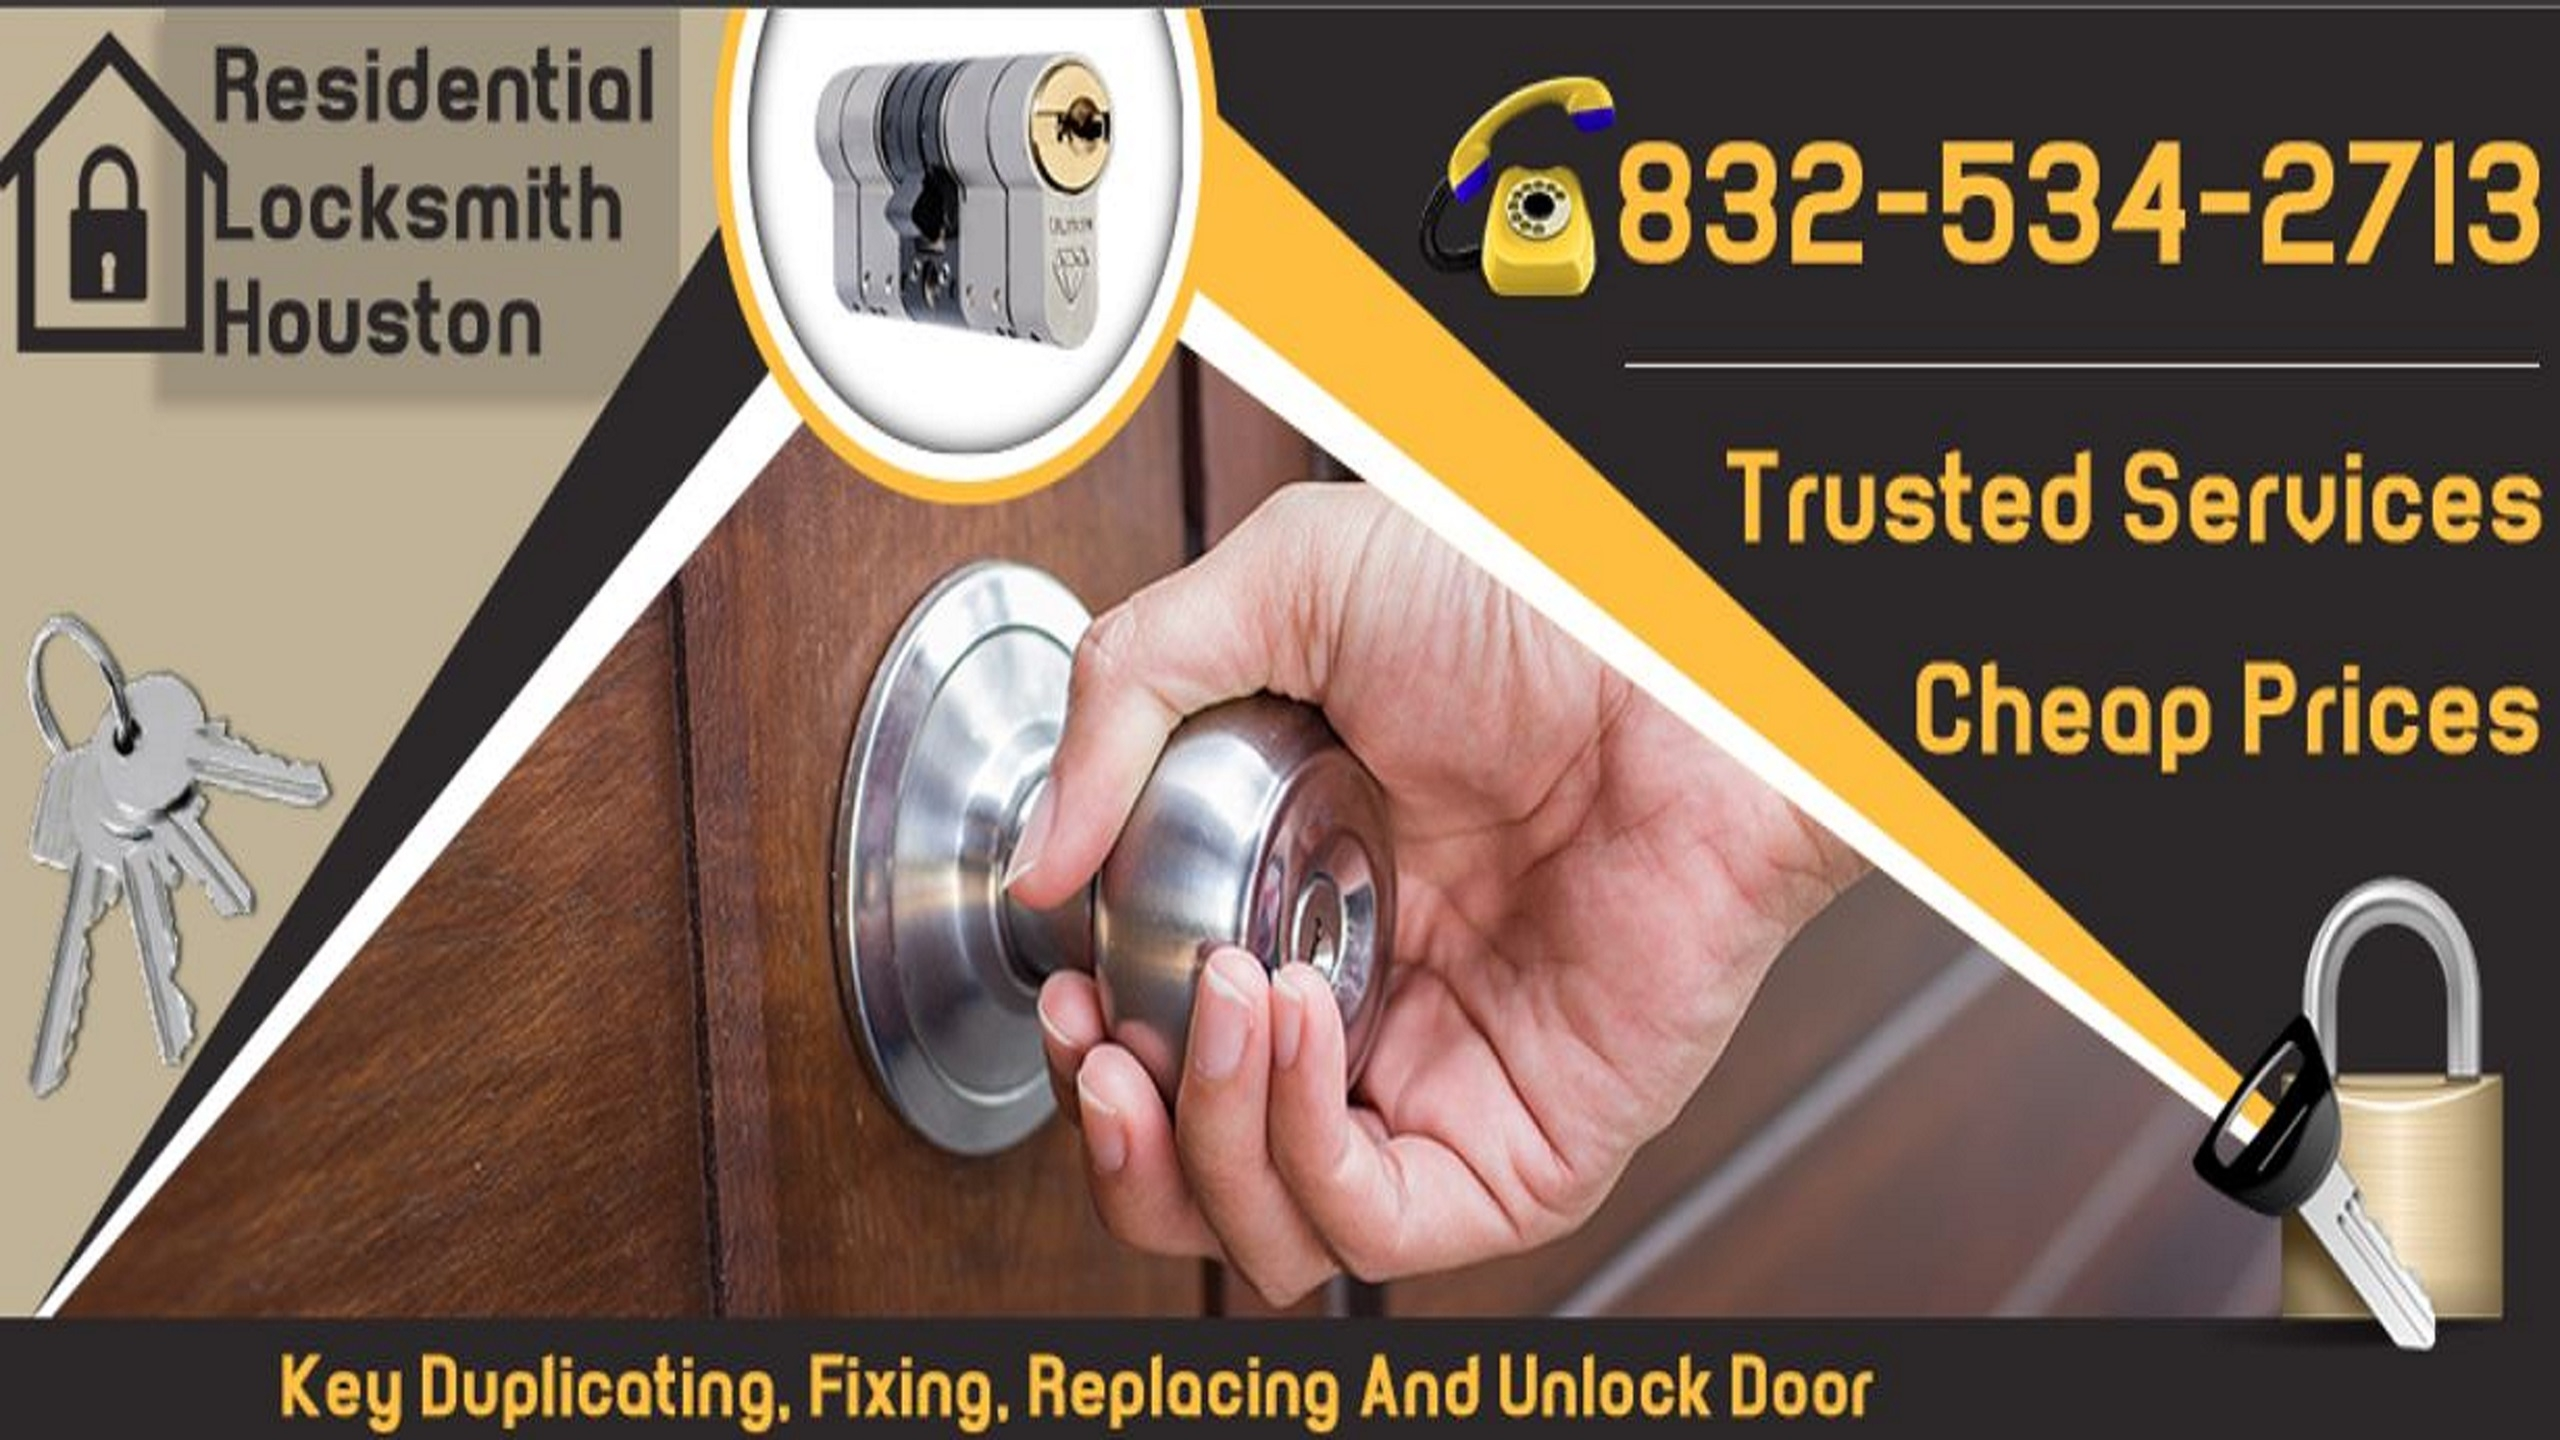 Residential Locksmith Houston (@residentiallocksmithhouston) Cover Image